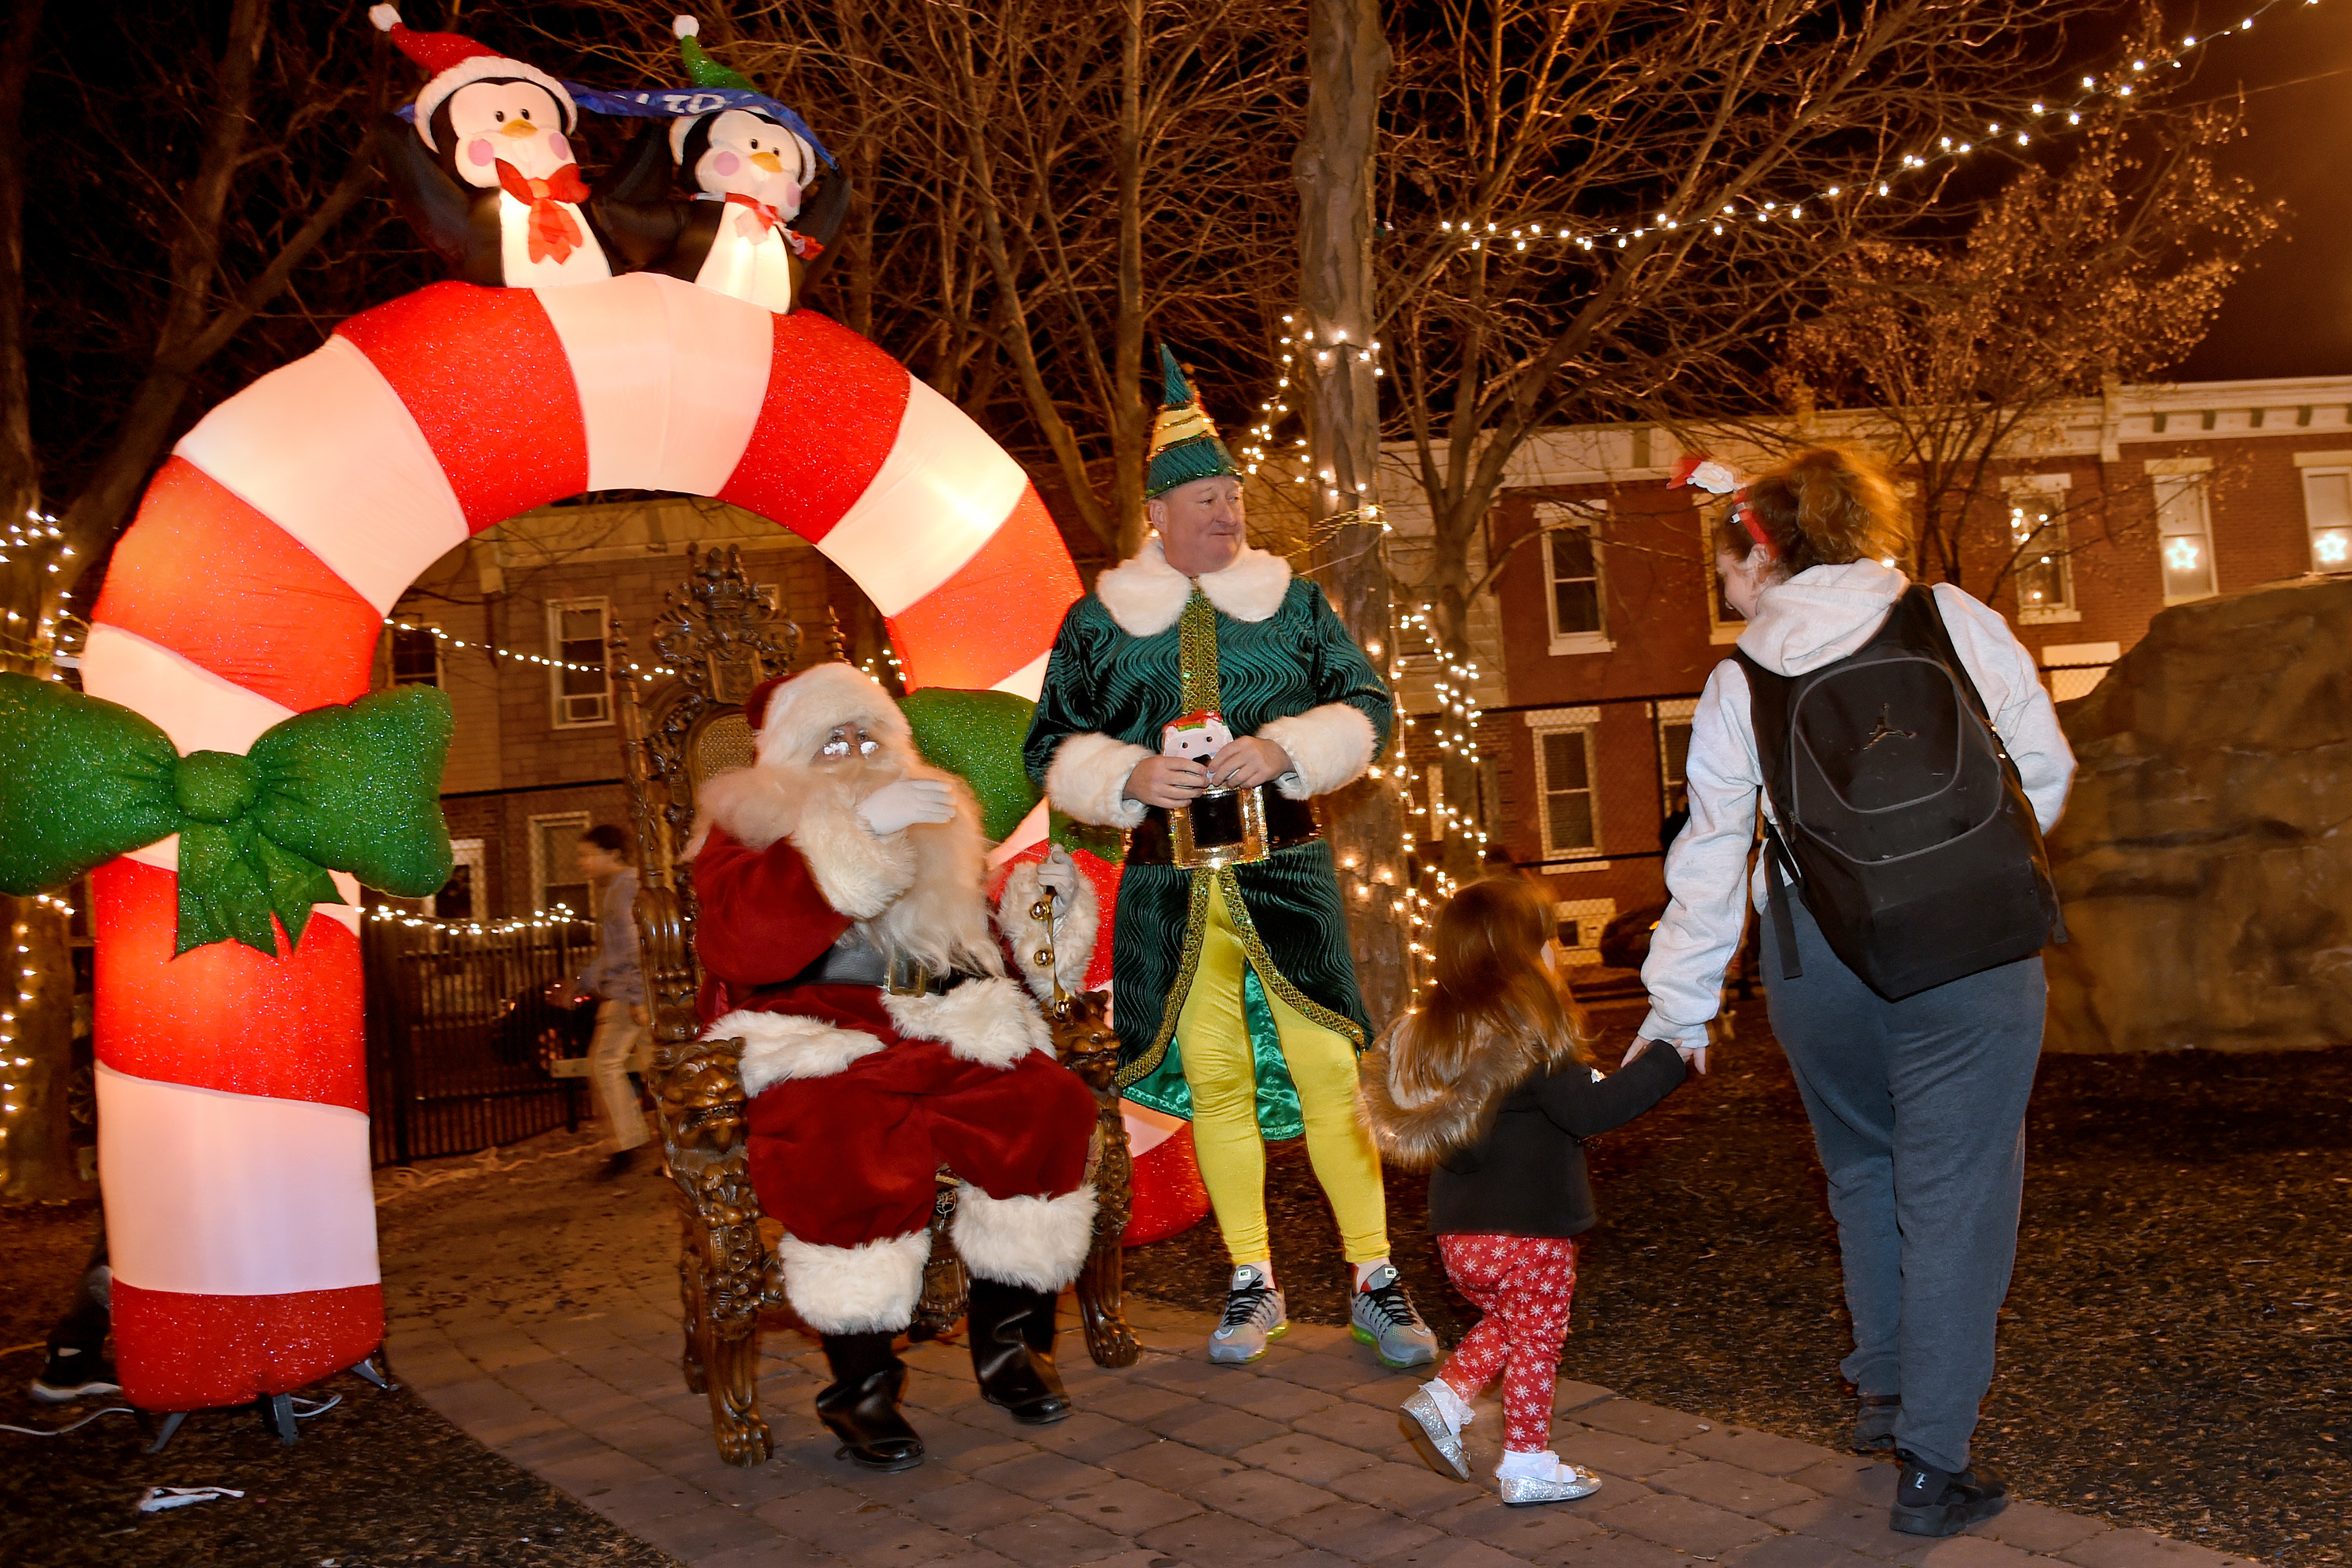 Mayor Kenney gives out toys to the children in his childhood Burke Playground at 2nd and Jackson Streets as he makes his annual holiday appearance as Buddy the Elf (with Councilman Mark Squilla as Santa) in his old South Philadelphia neighborhood December 19, 2017.